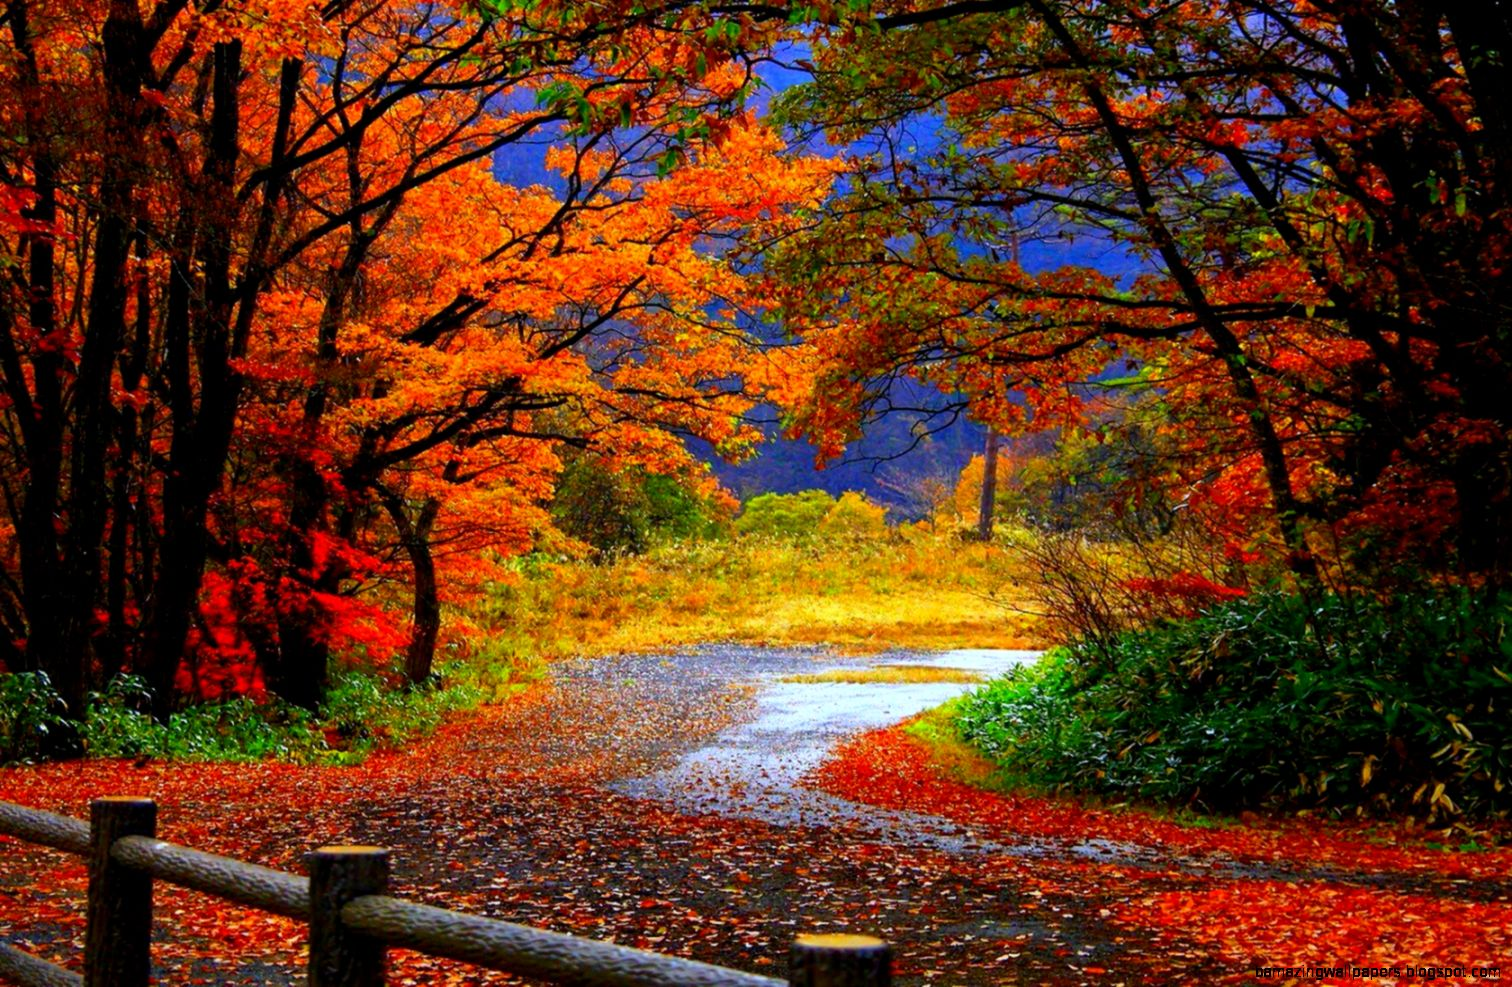 Autumn Wallpaper Hd   WallpaperSafari